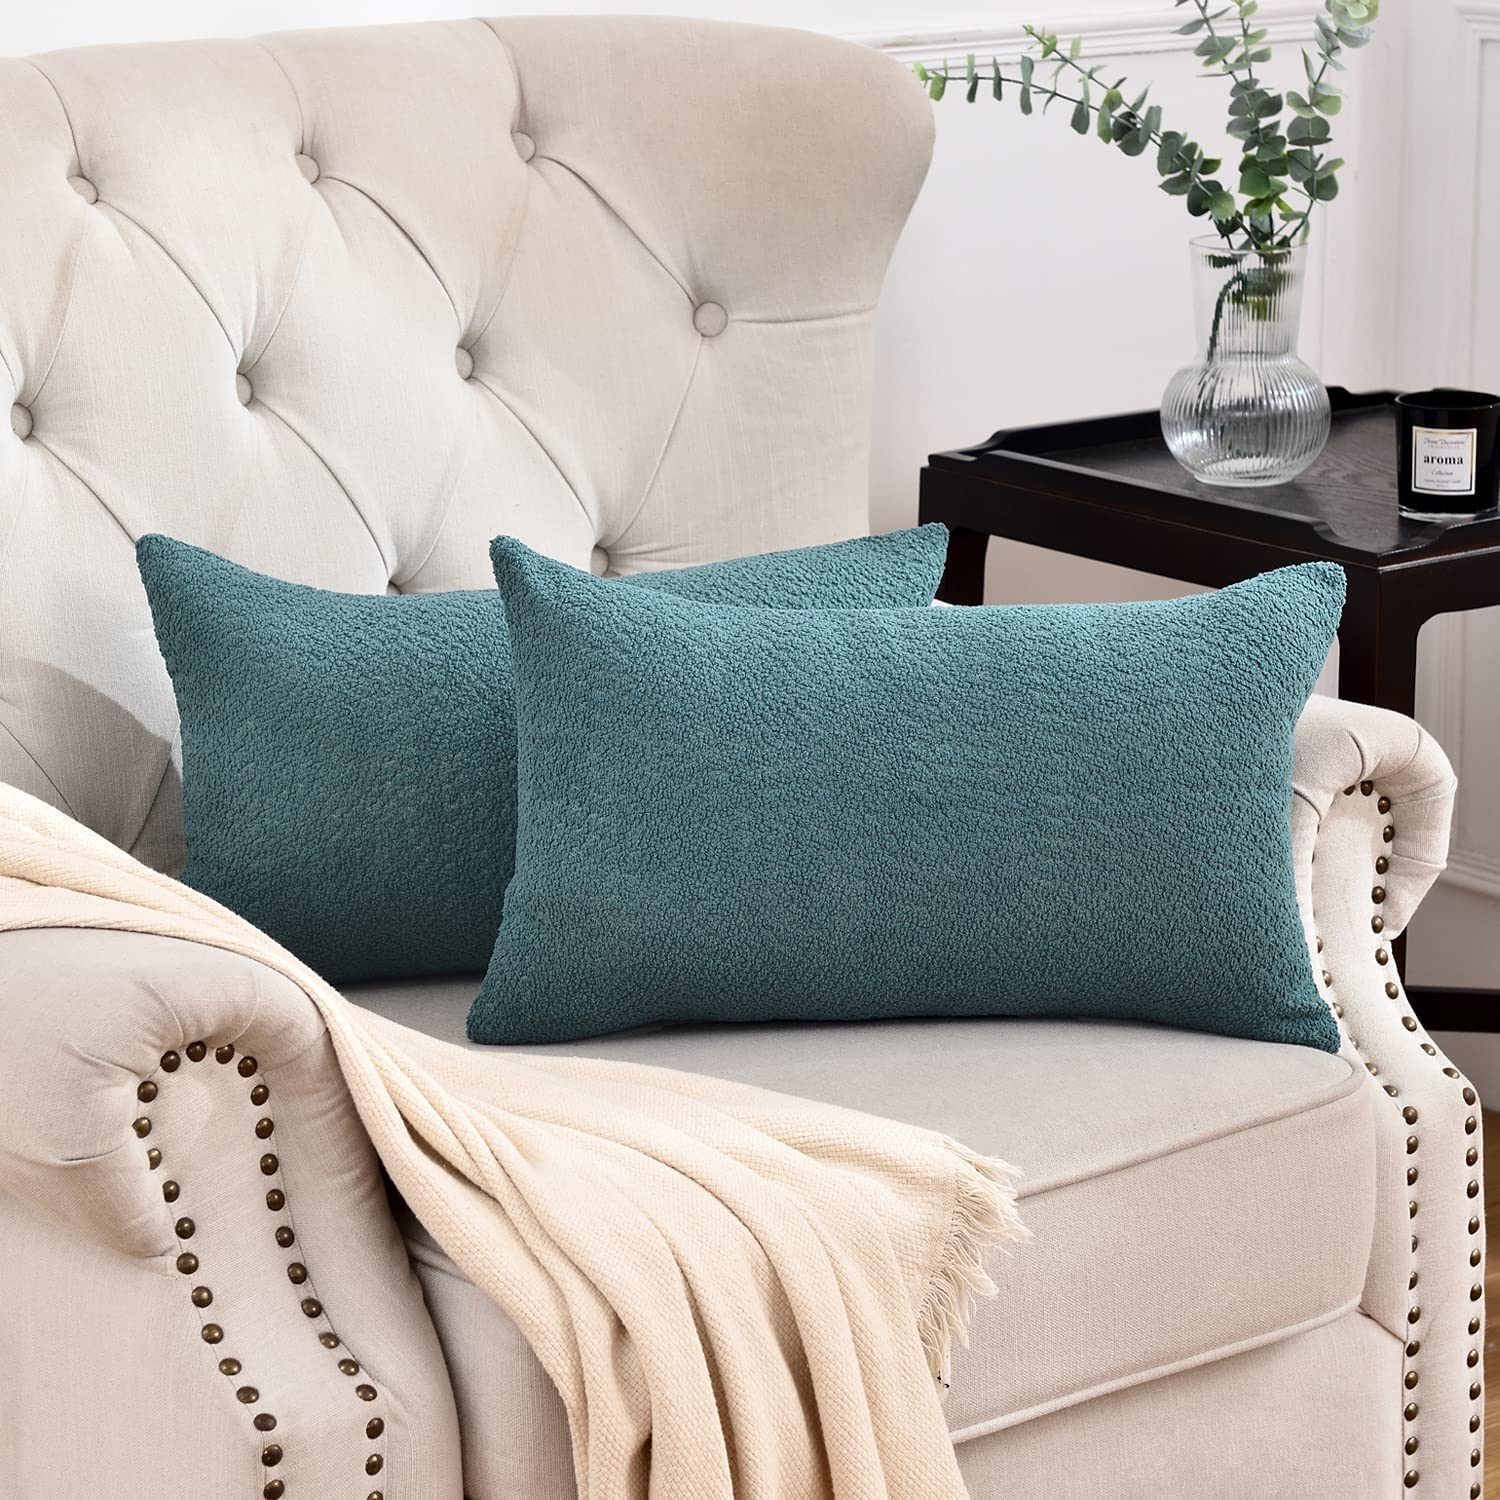 Rythome Teal Green Decorative Max 65% OFF Boucle Pillow Max 43% OFF Throw Textured Cover